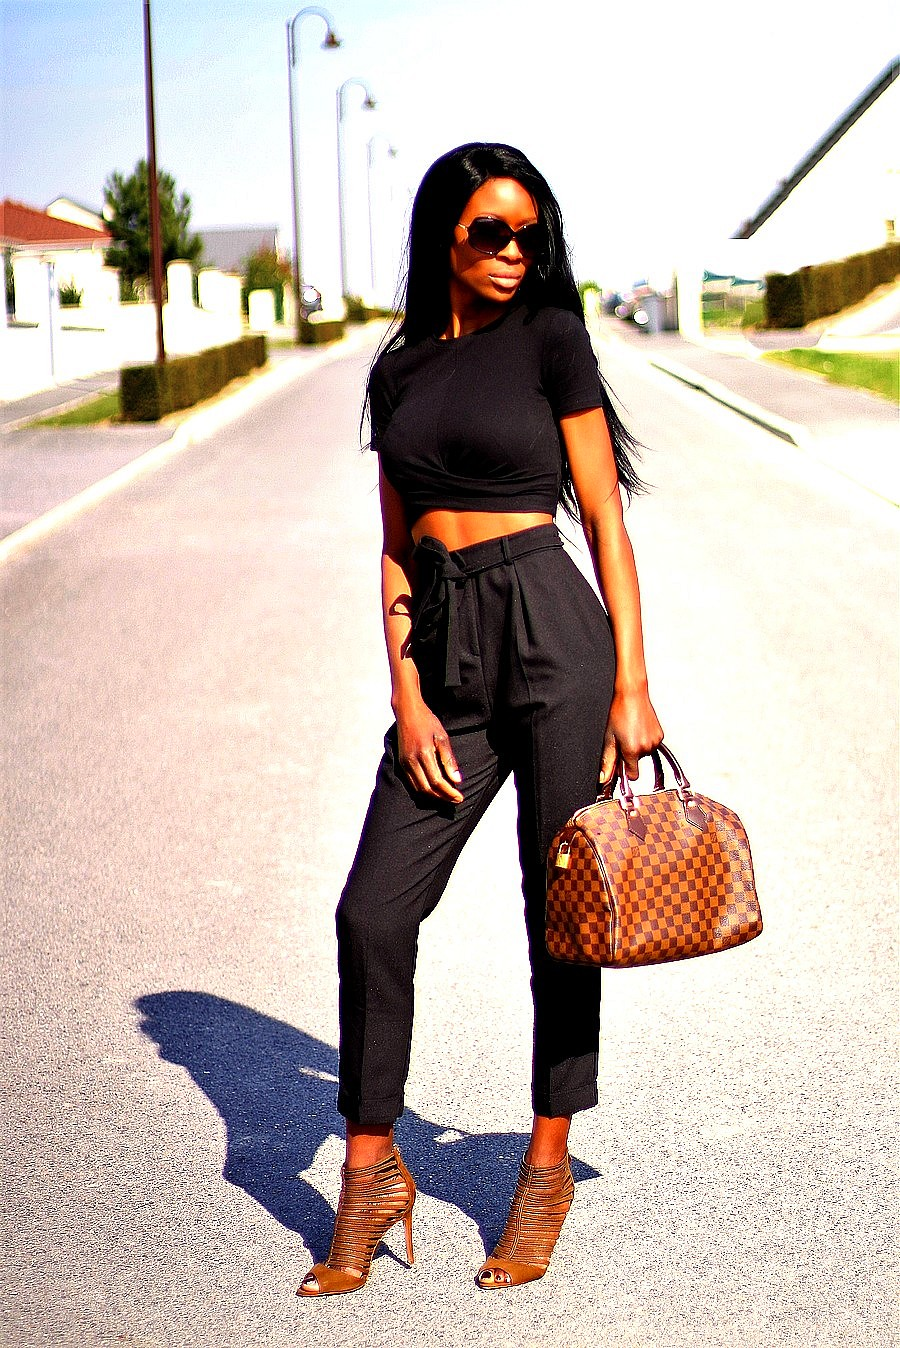 sac-speedy-louis-vuitton-pantalon-taille-haute-crop-top